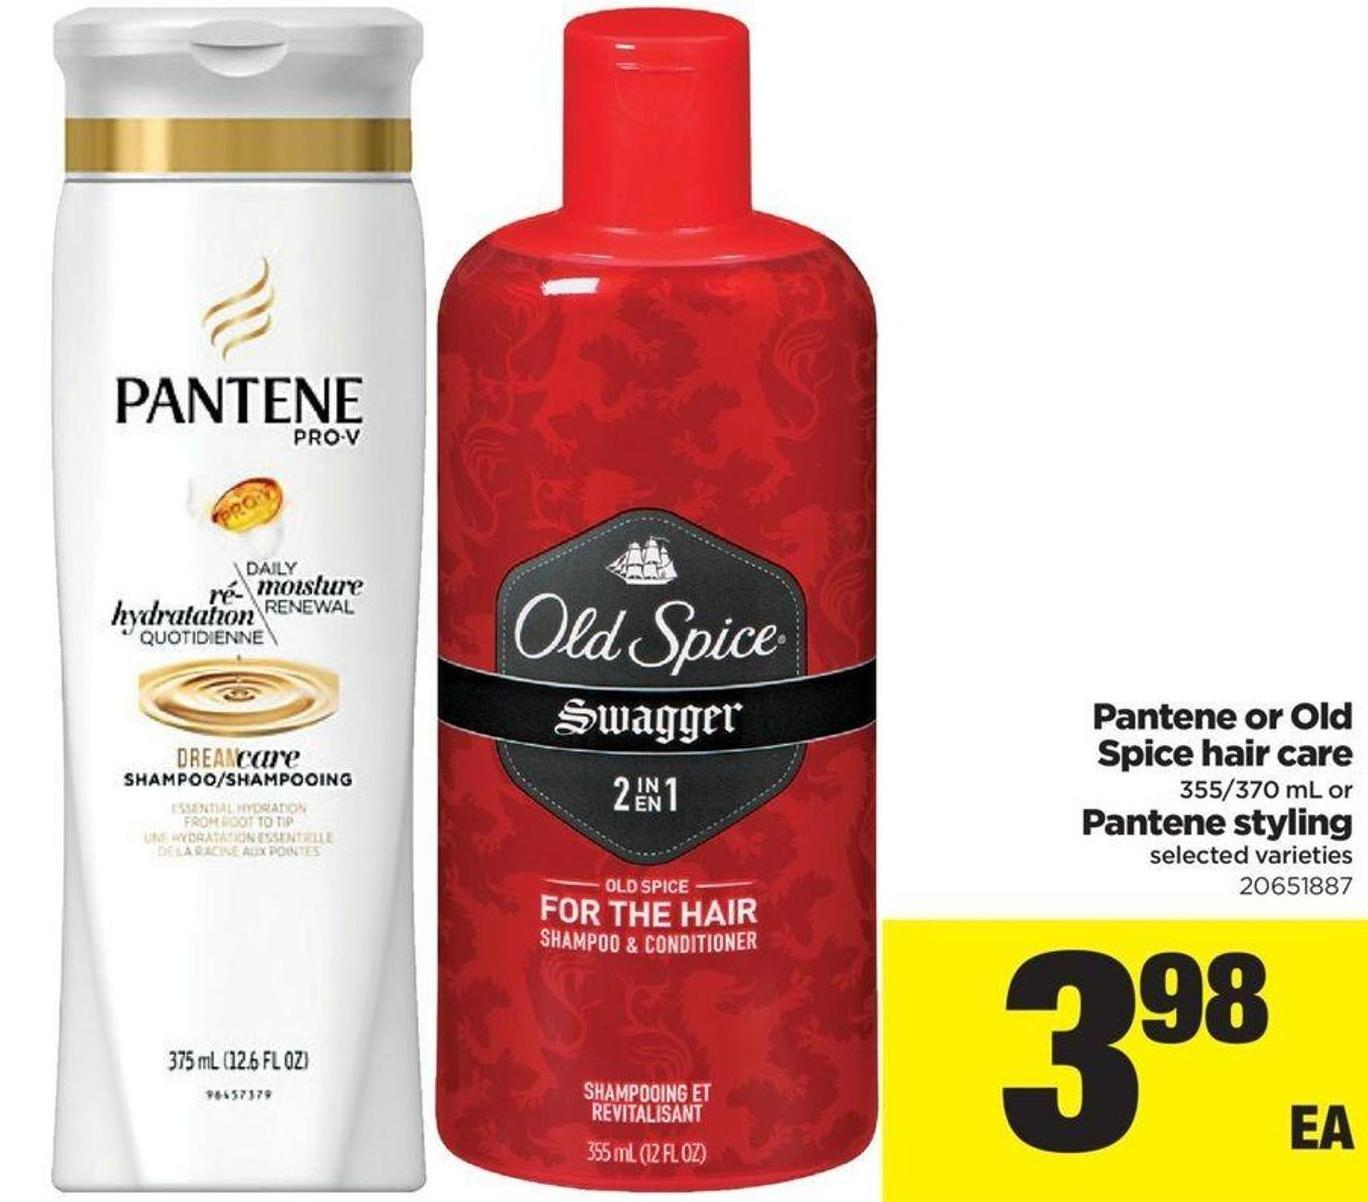 Pantene Or Old Spice Hair Care - 355/370 Ml Or Pantene Styling